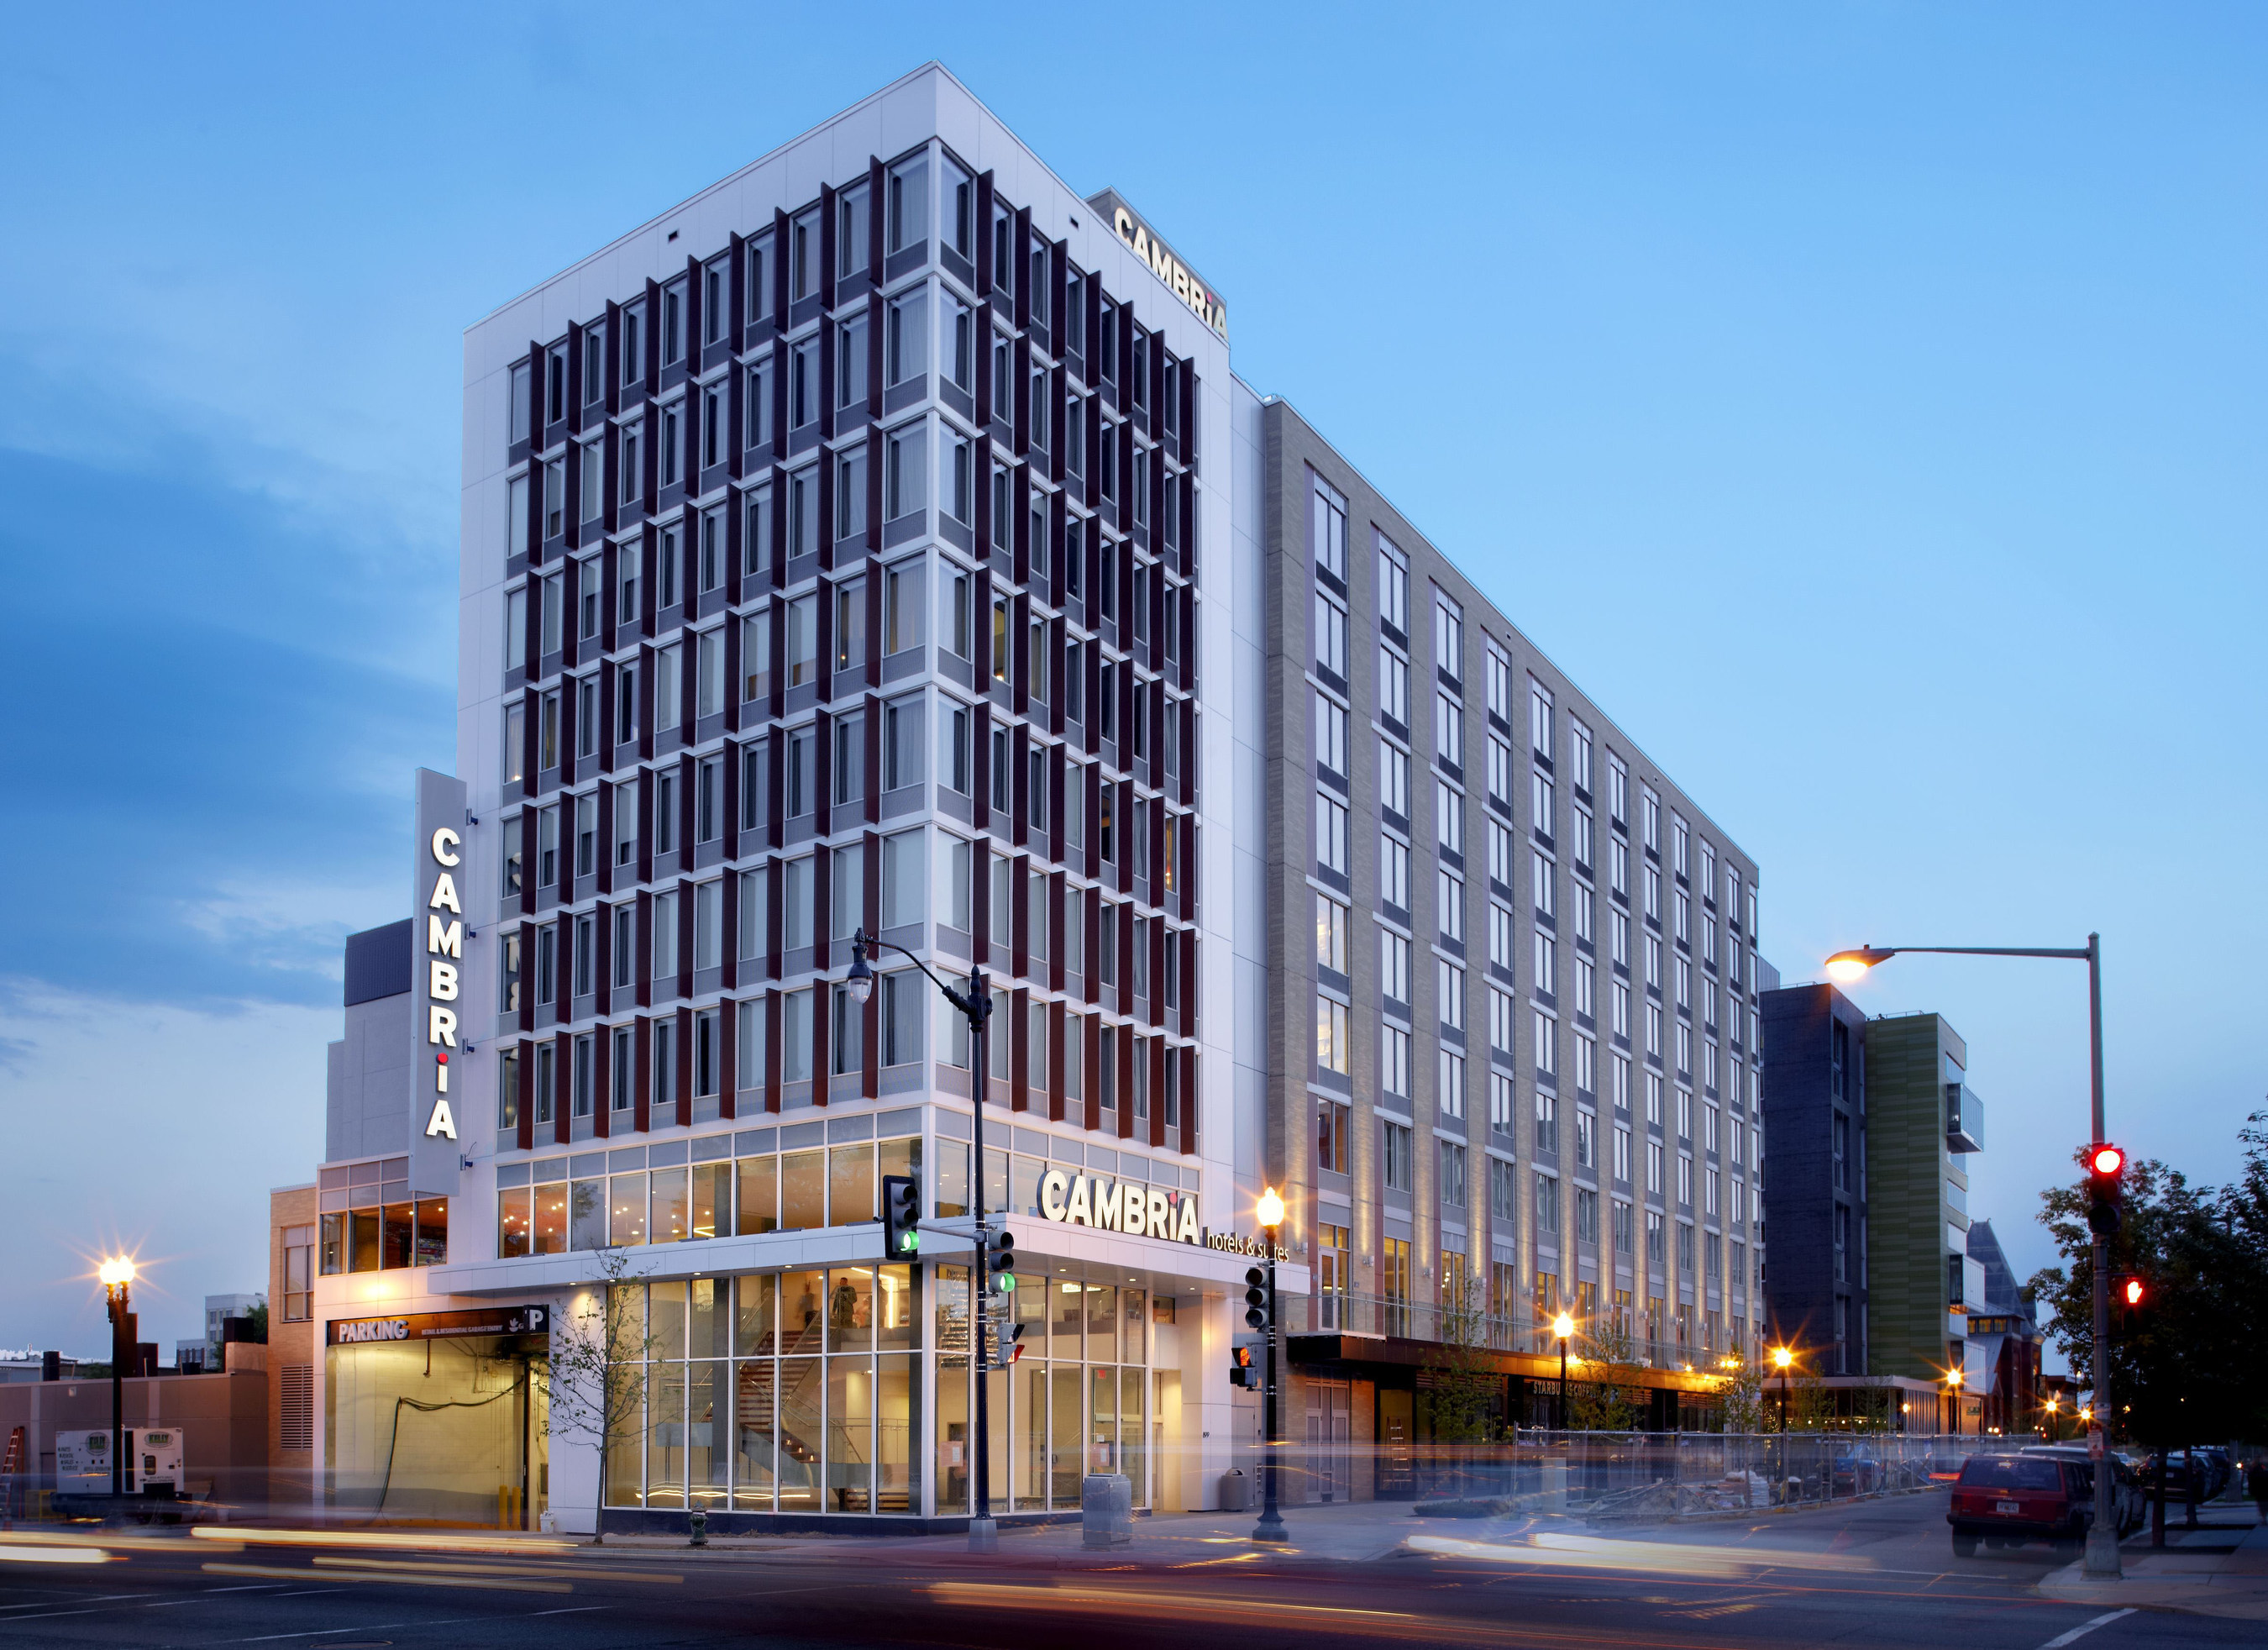 Choice hotels international opens 478 hotels worldwide in 2014 for Choice hotels